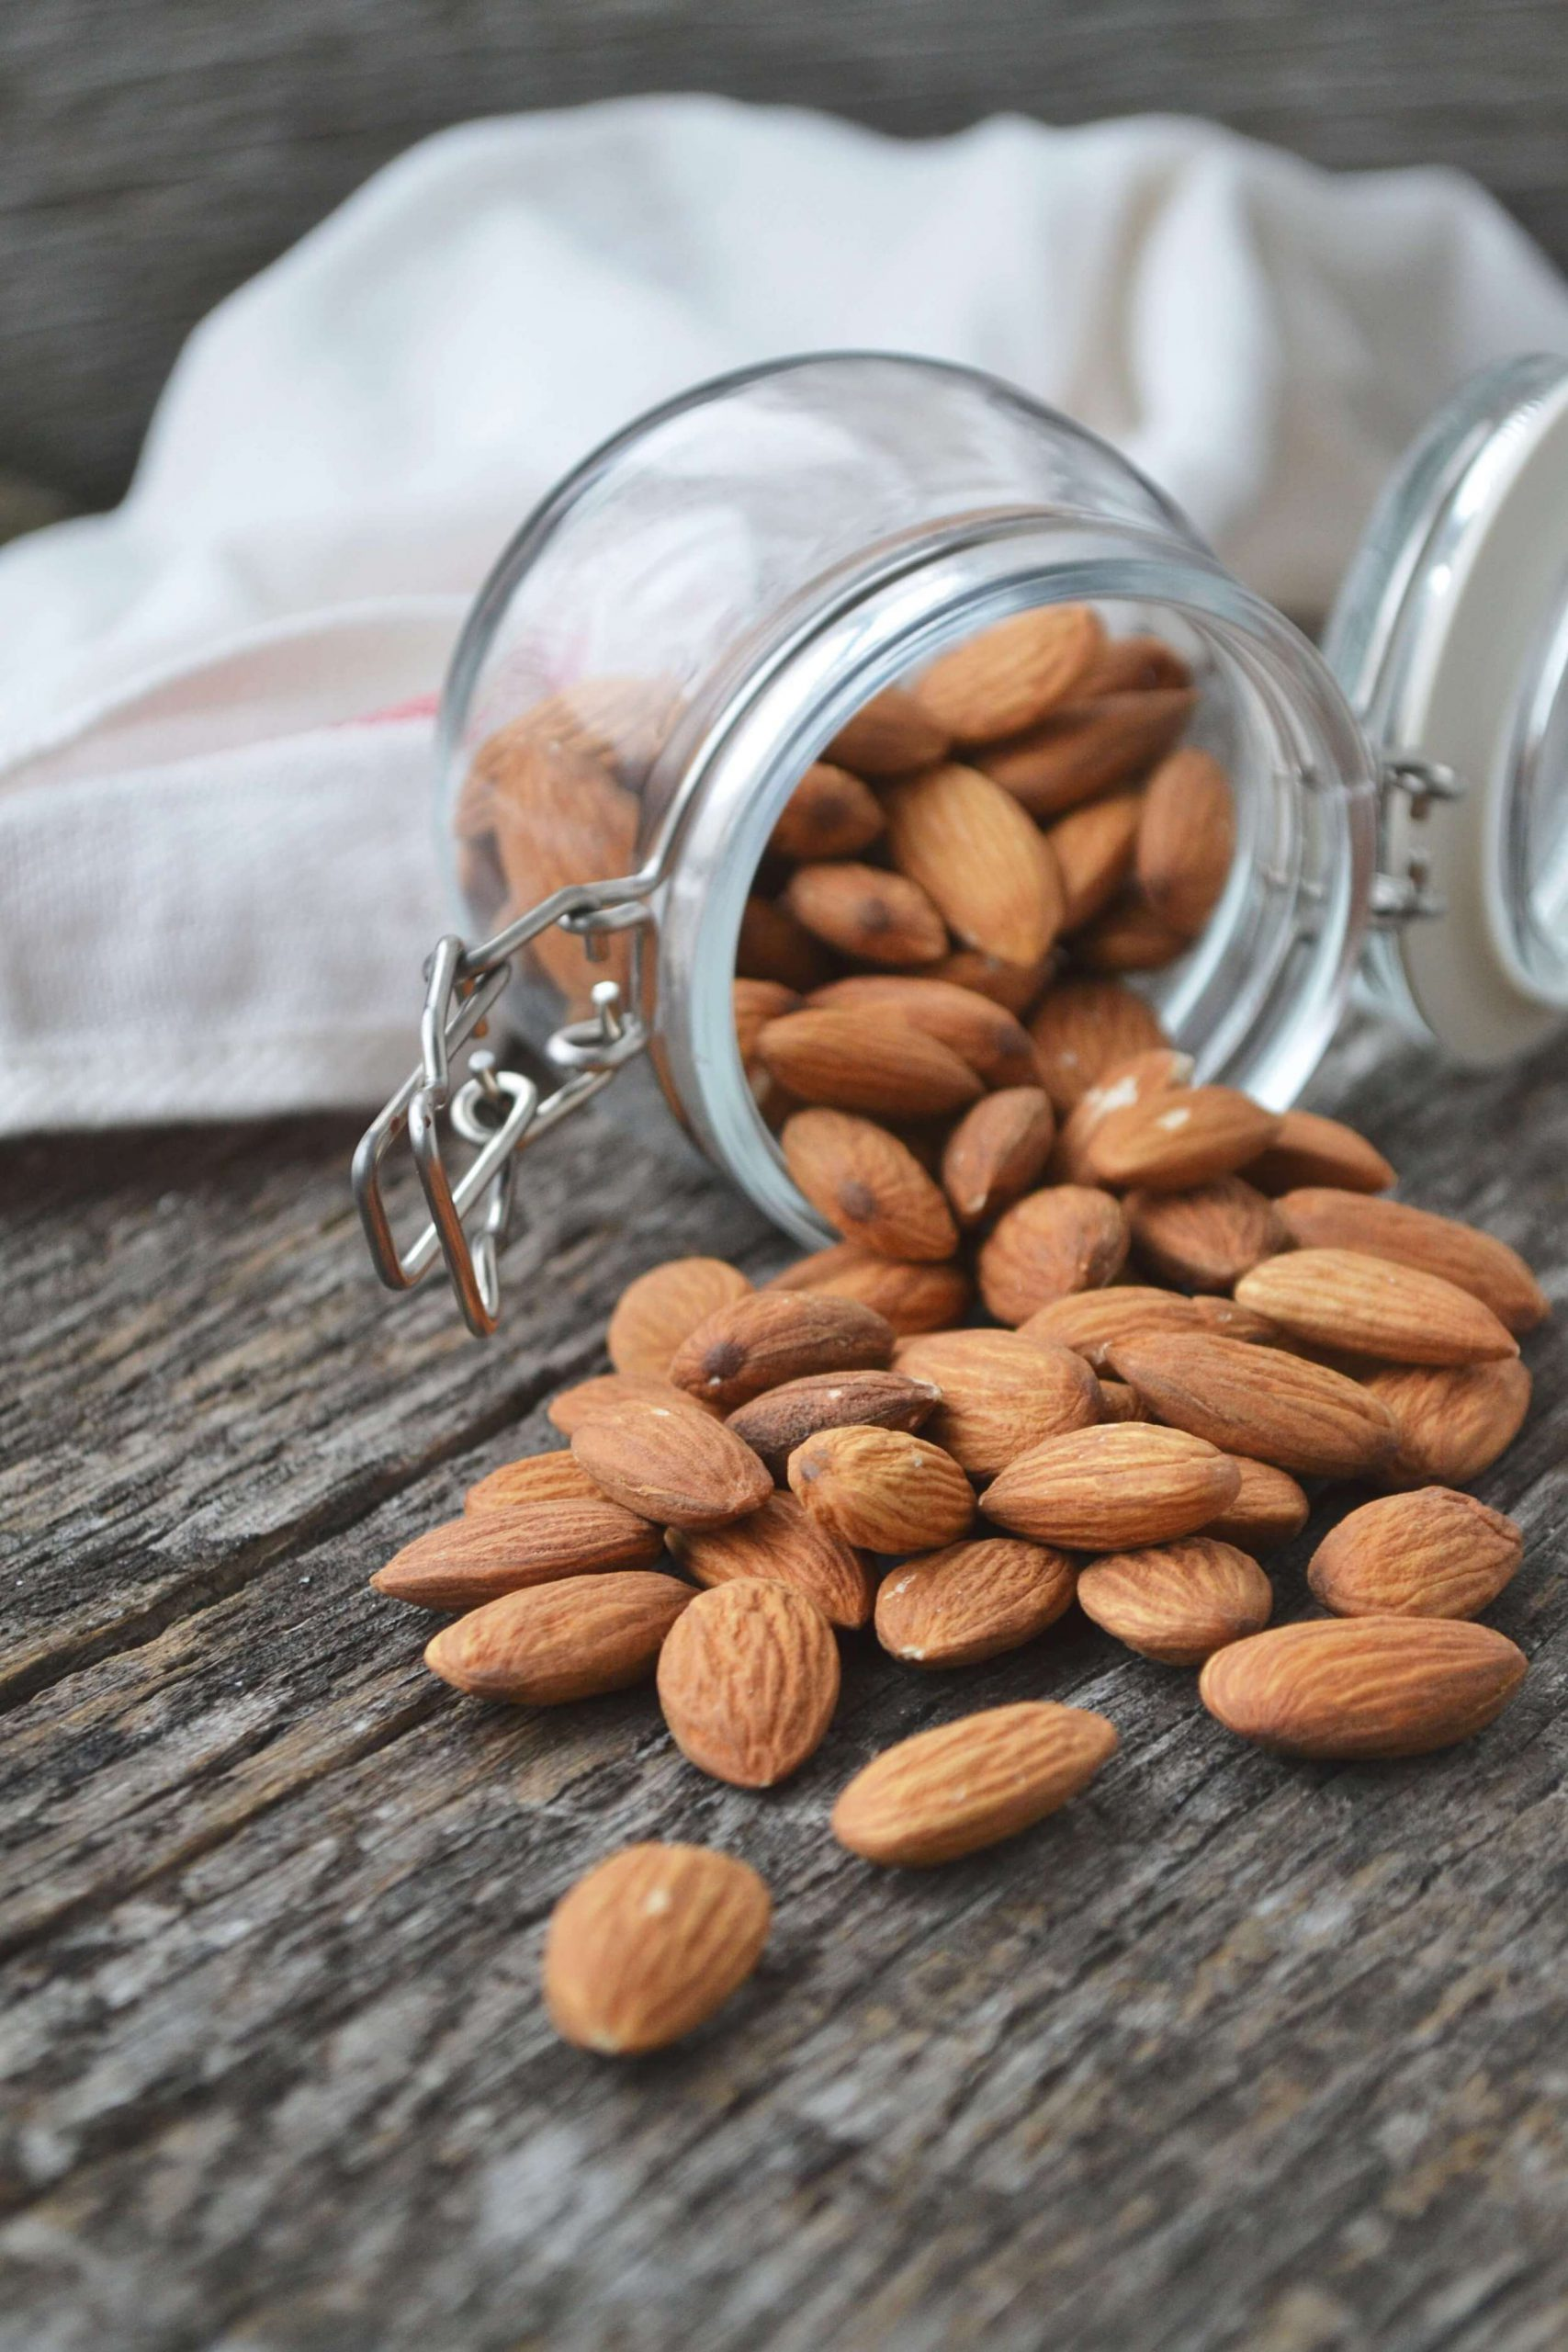 Almonds-As-A-Source-Of-Protein